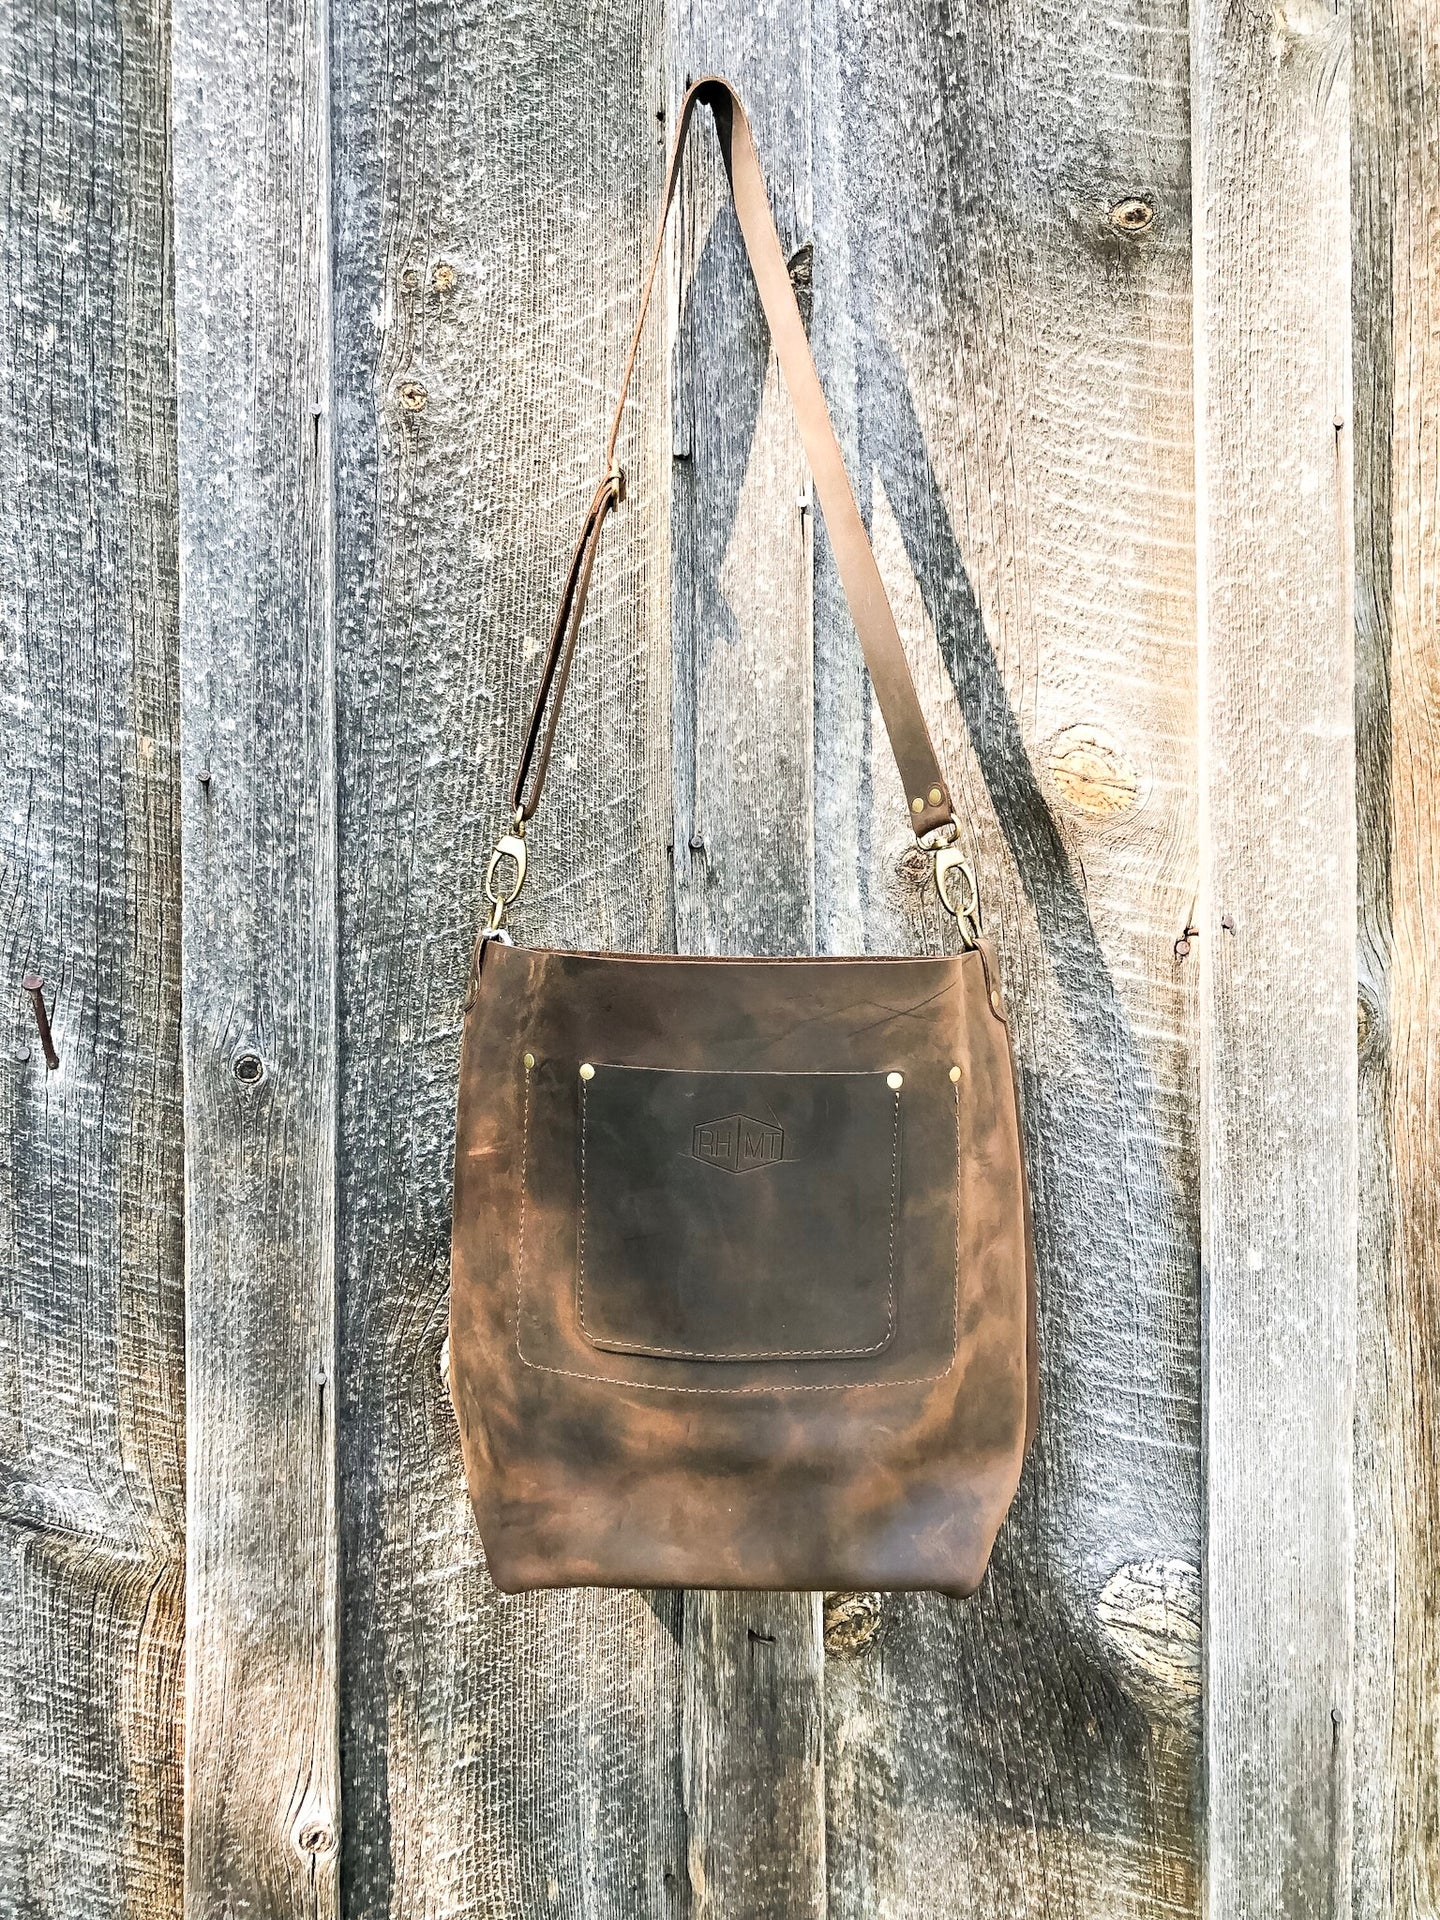 The McFarland Leather Tote Bag